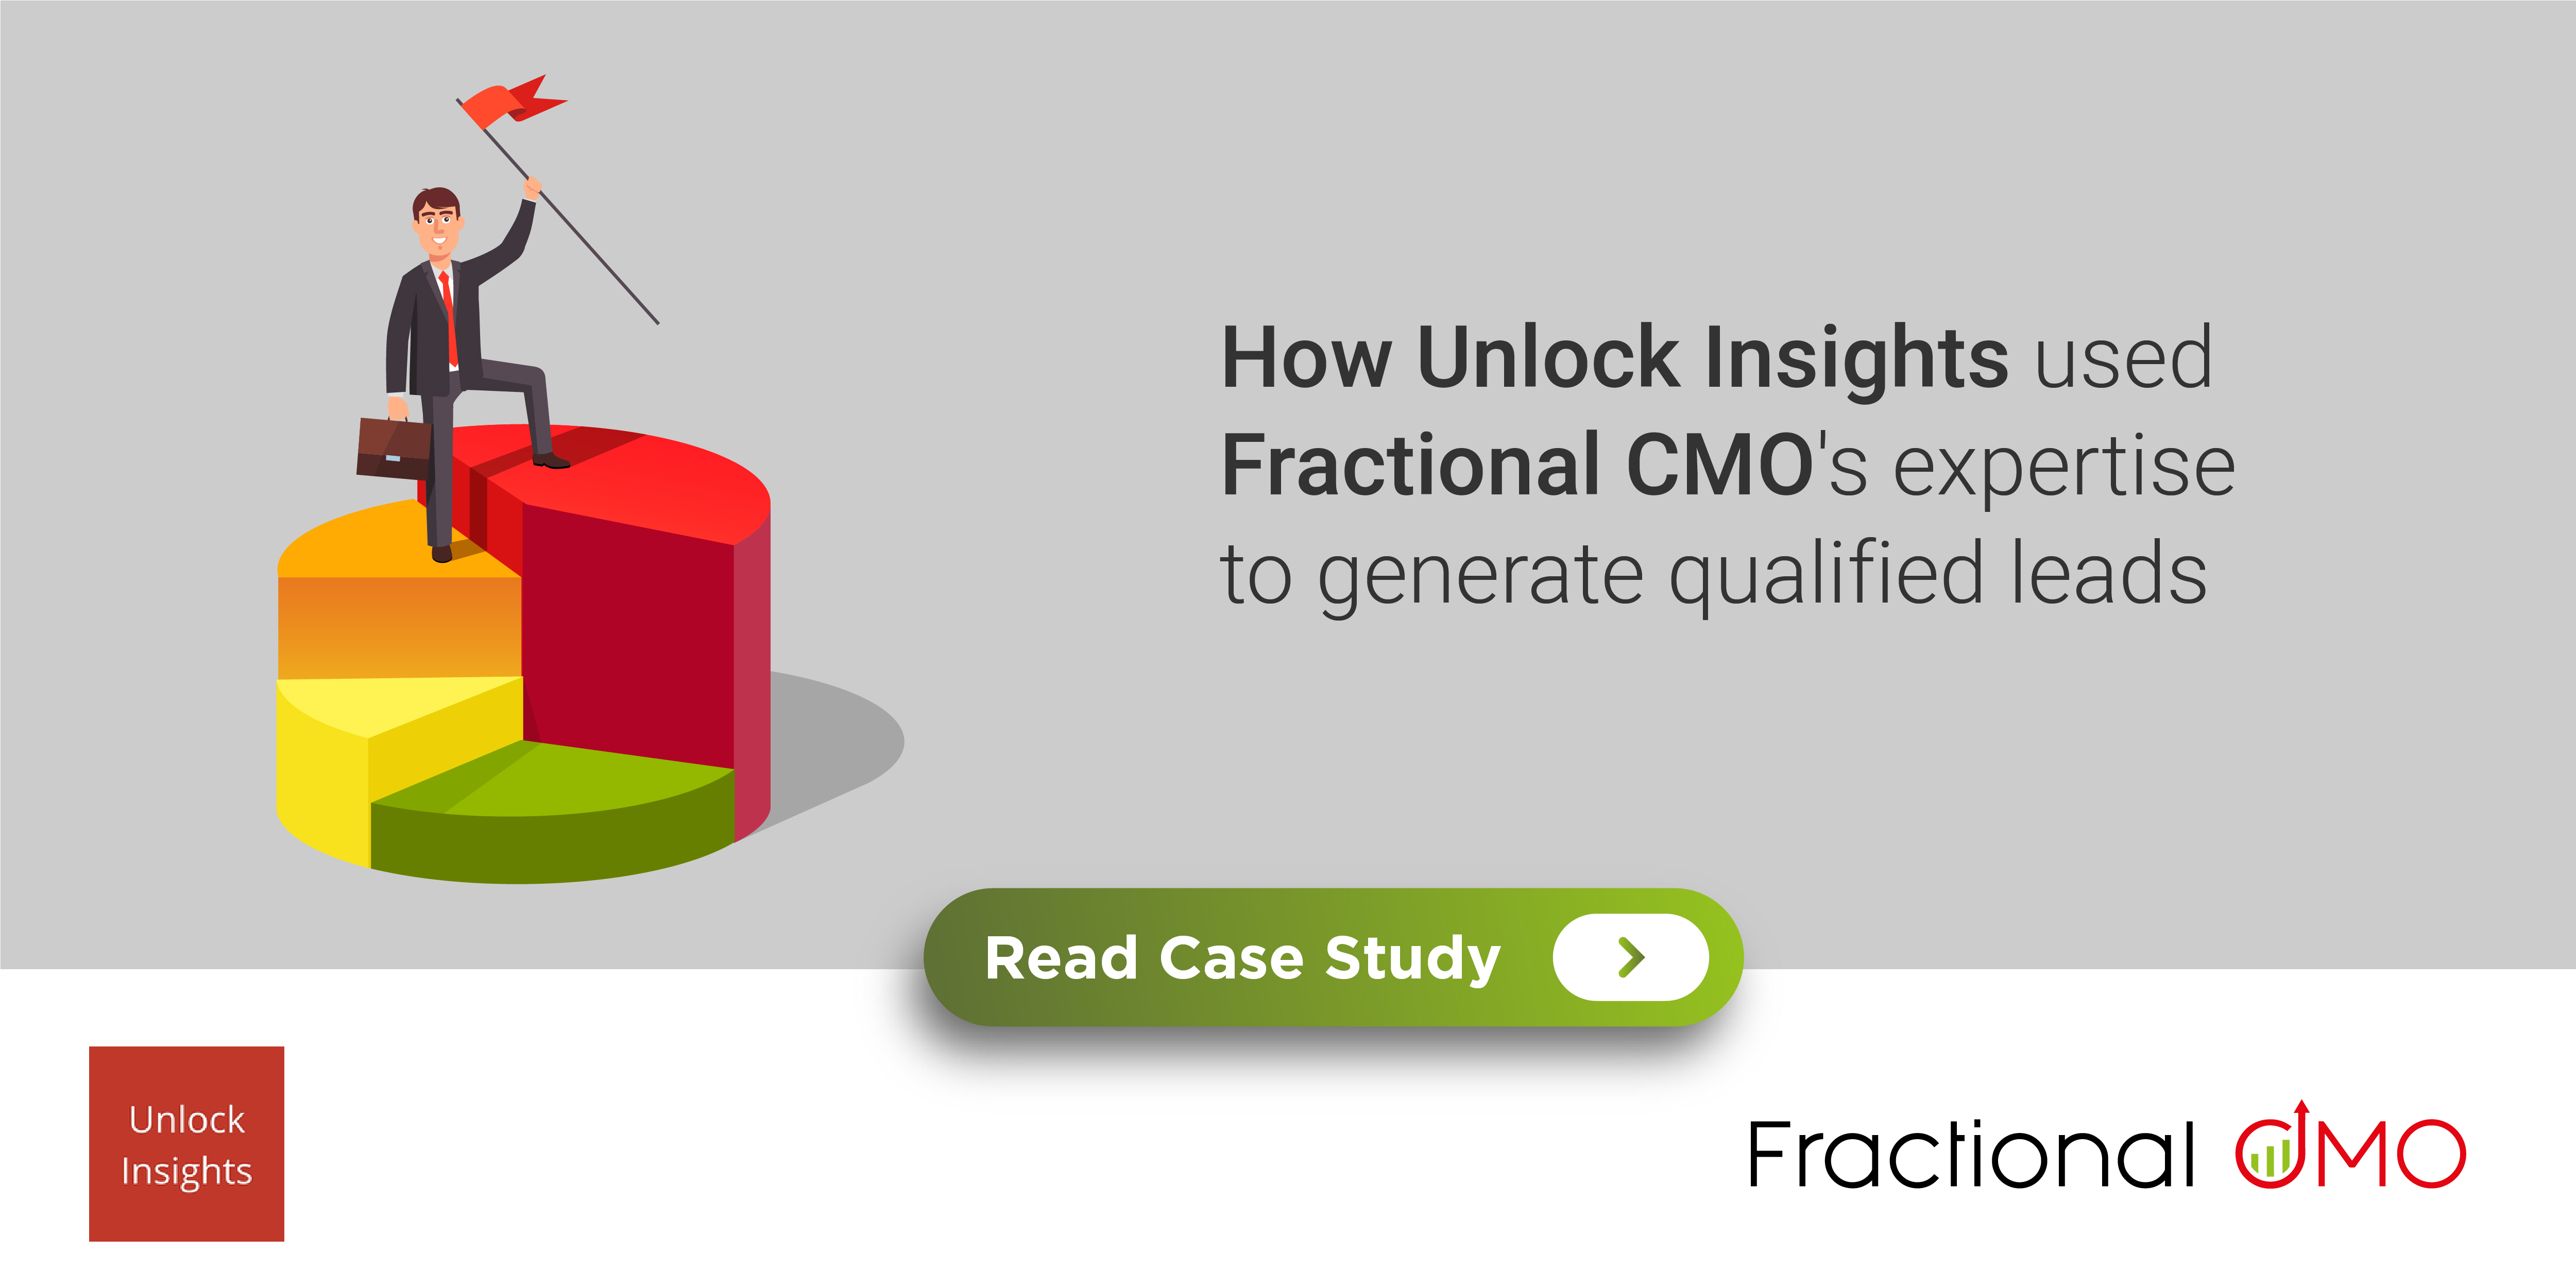 How Unlock Insights used Fractional CMO's expertise to generate qualified leads